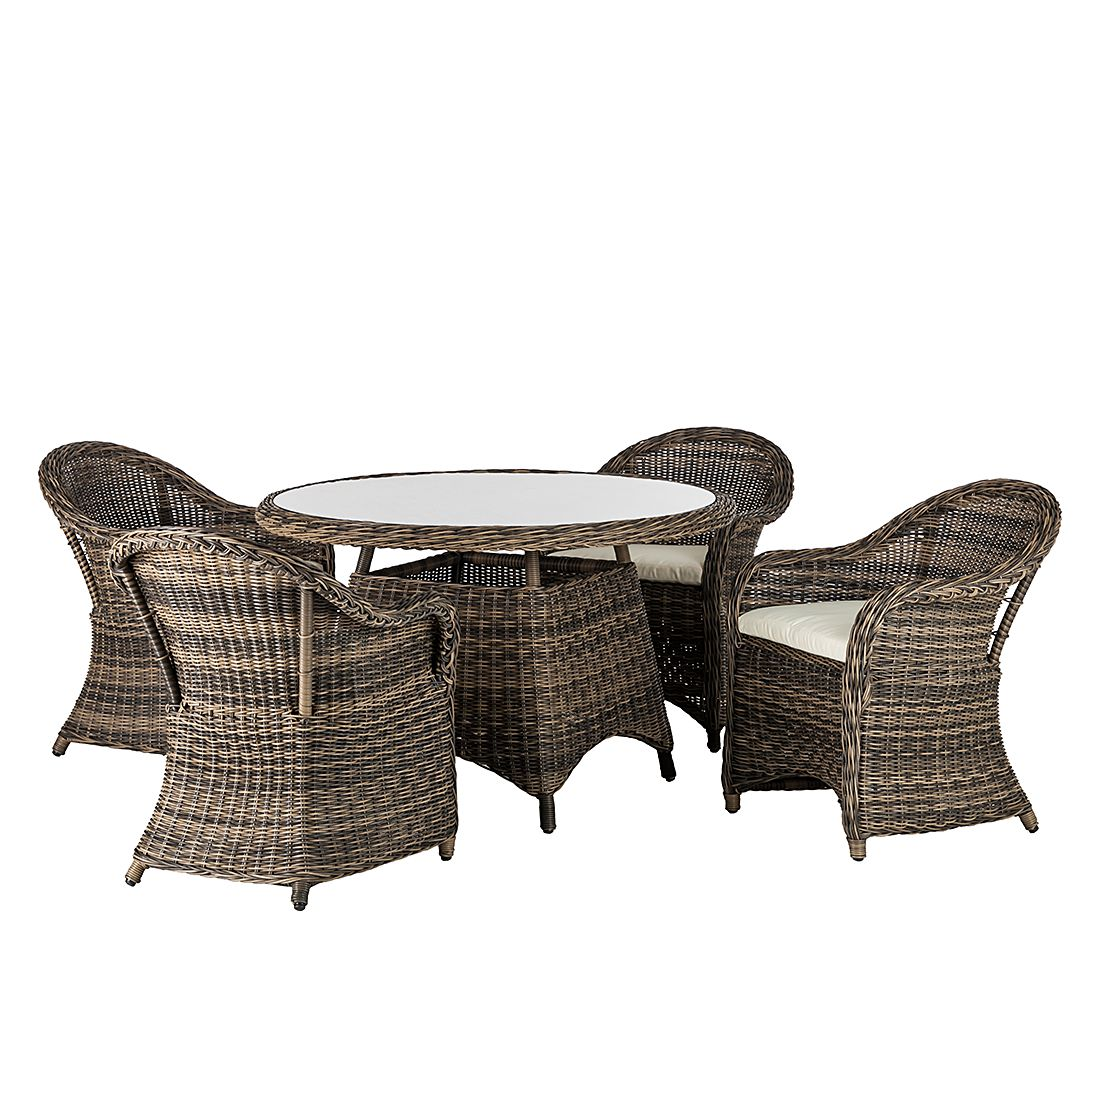 sitzgruppe royal comfort 5 teilig polyrattan braun maison belfort. Black Bedroom Furniture Sets. Home Design Ideas